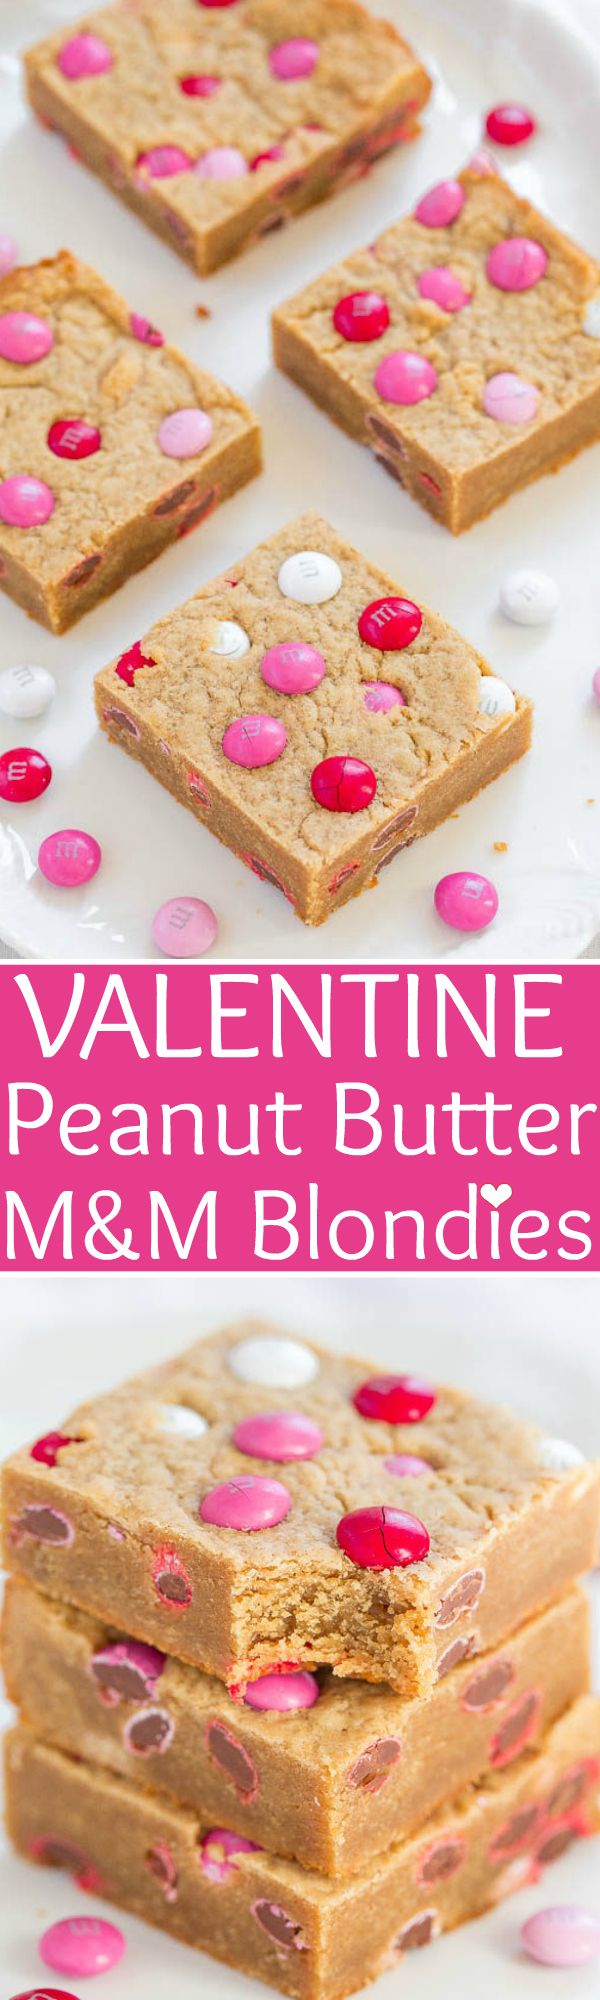 Valentine Peanut Butter M&M Blondies - Soft and chewy with rich peanut butter flavor and studded with M&Ms!! Perfect for Valentine's Day events or parties! EASY, one bowl, no mixer recipe that everyone loves!!